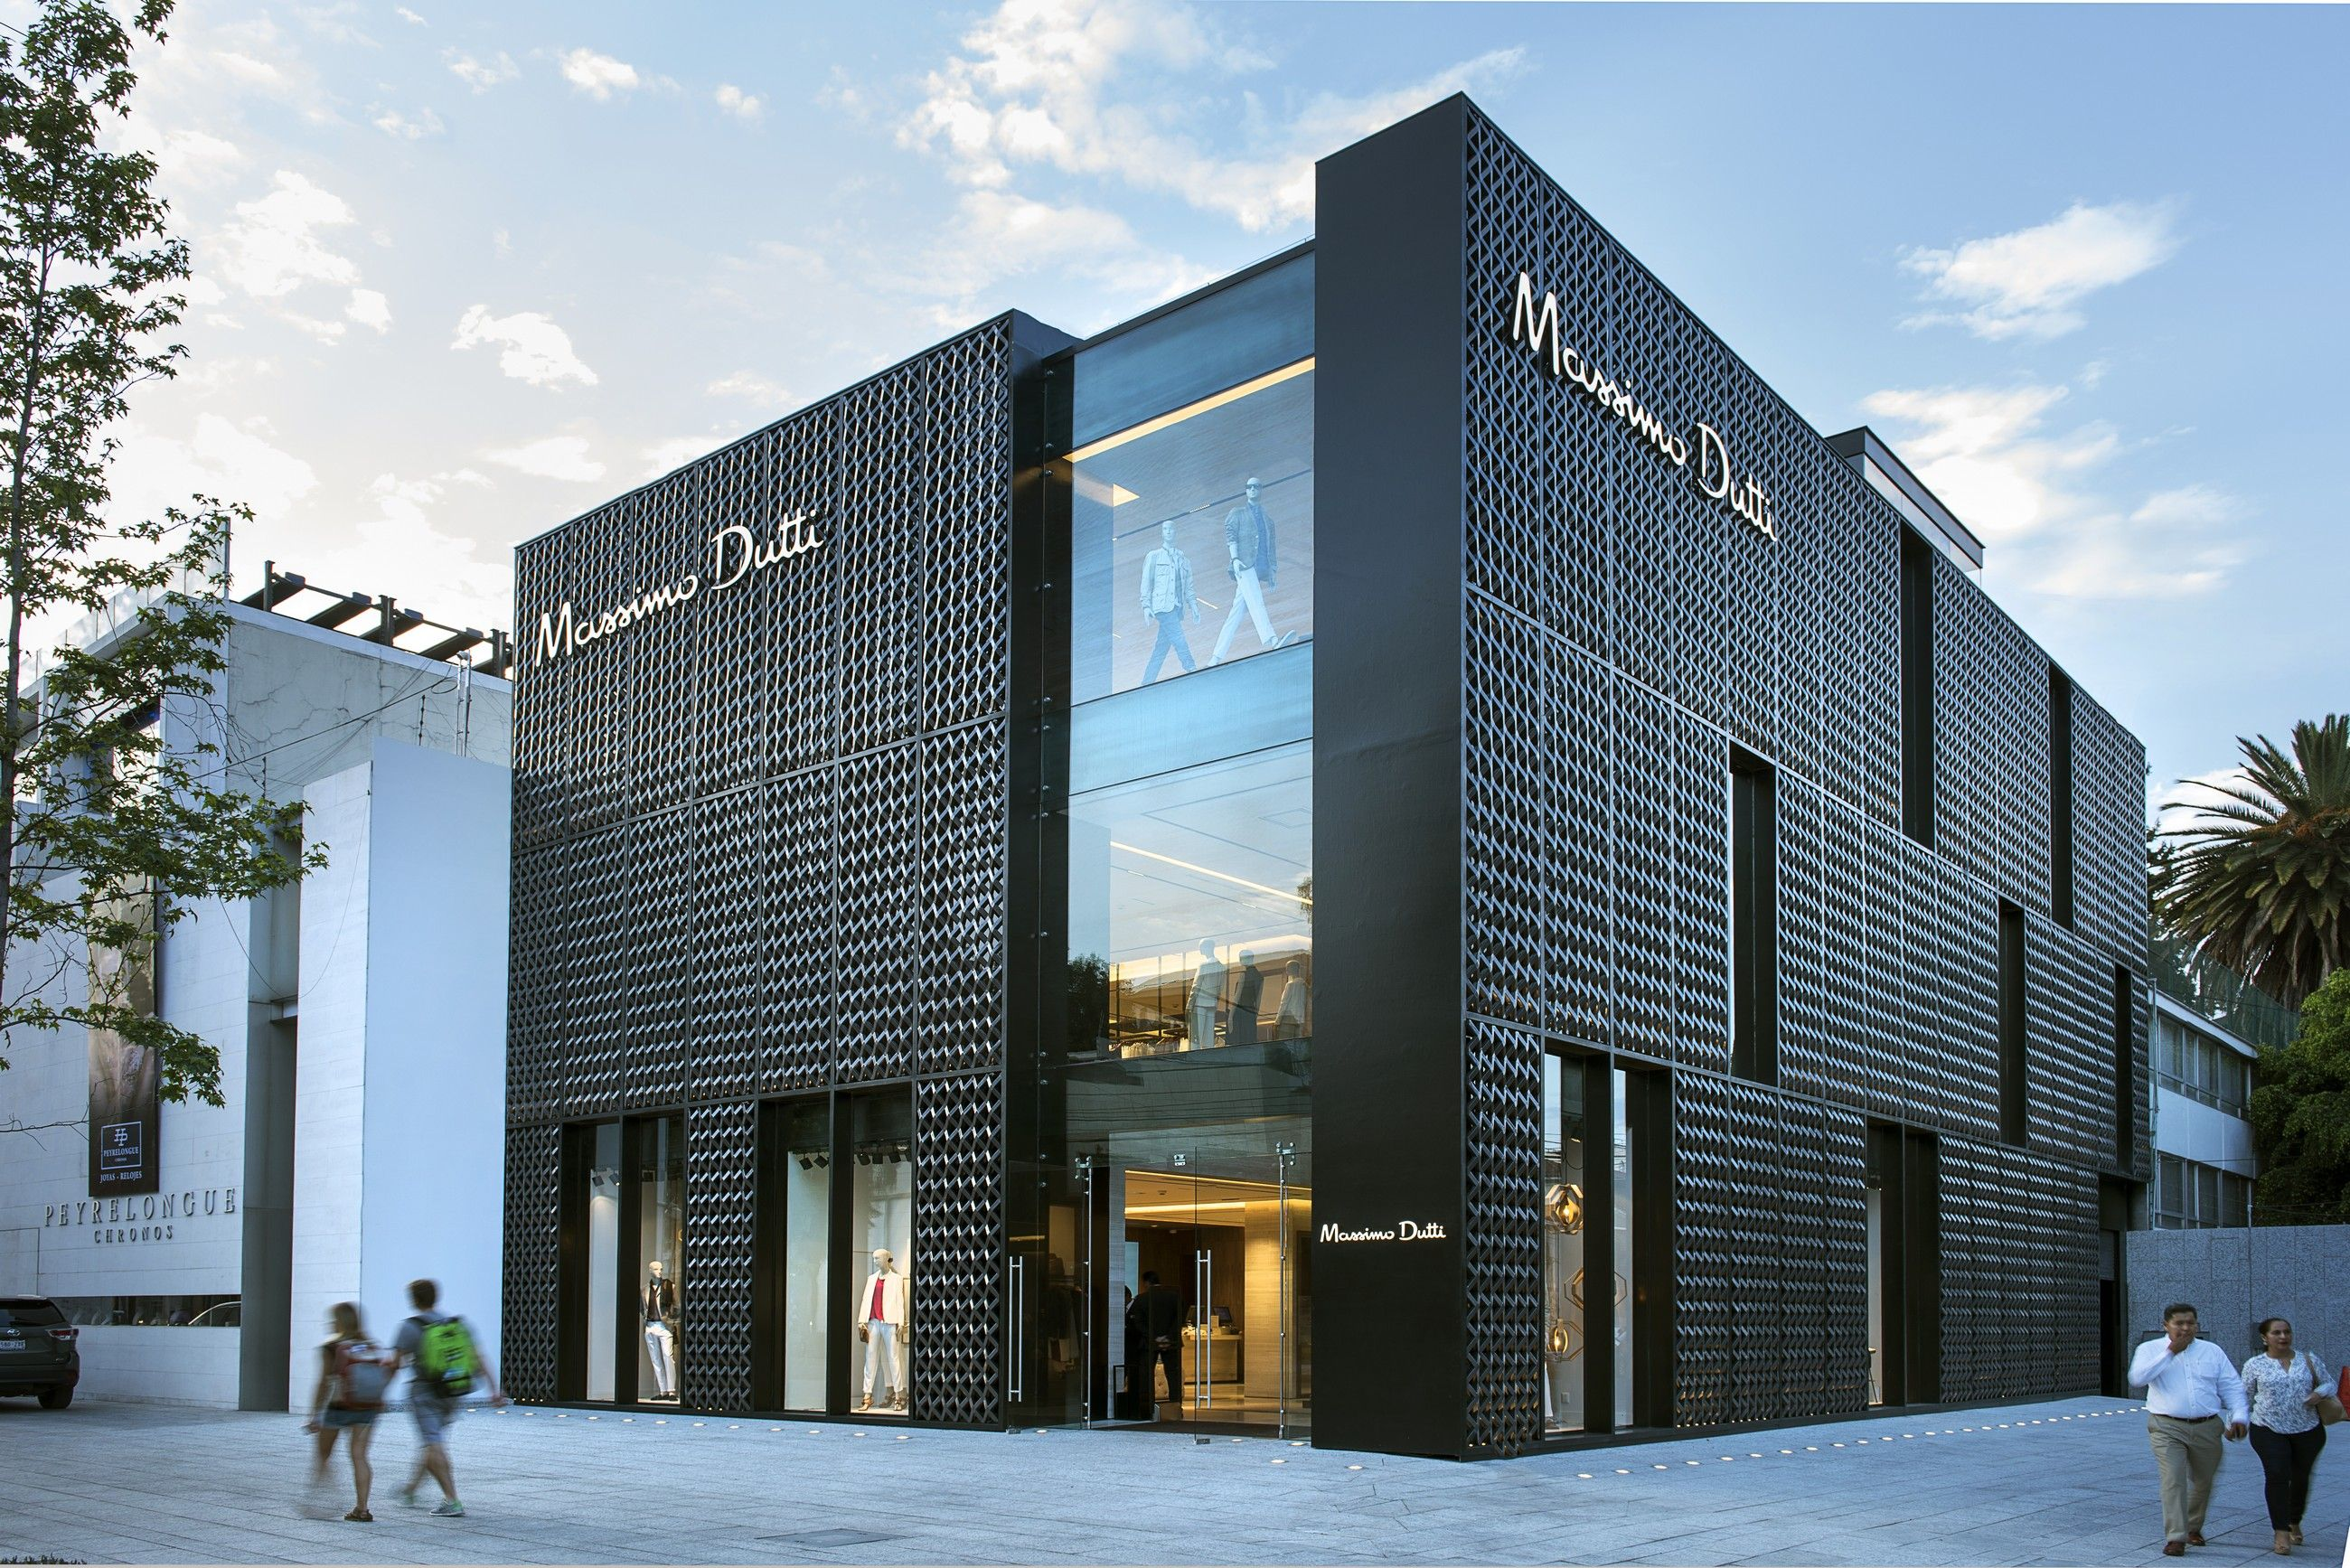 The new flagship store for massimo dutti is located on for Store building design